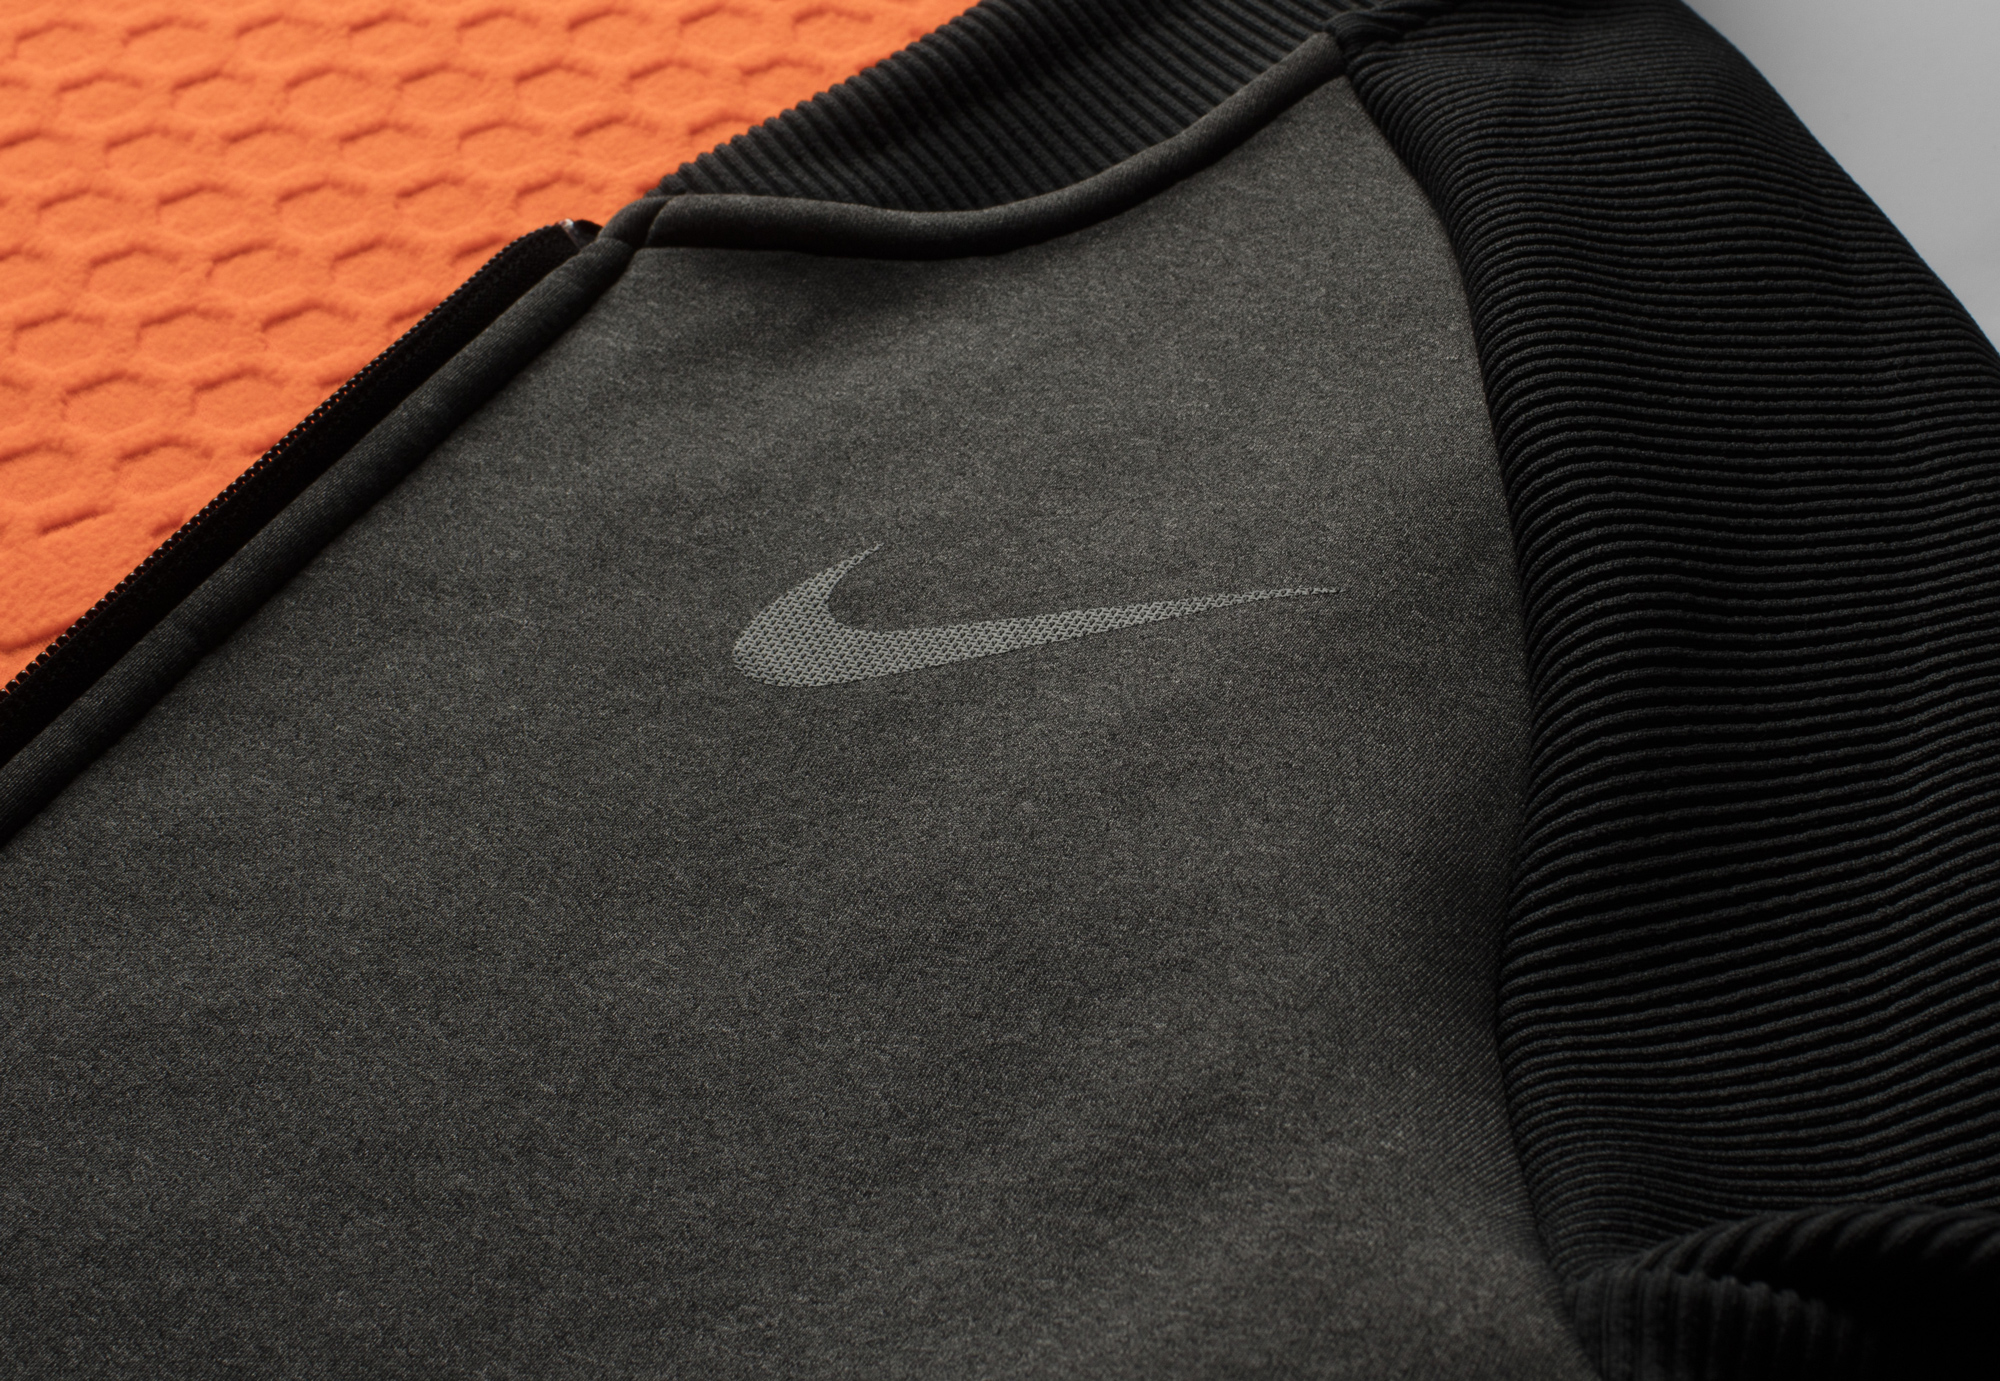 ho16_mt_nike_therma-sphere_max_bomber_jacket_detail_001